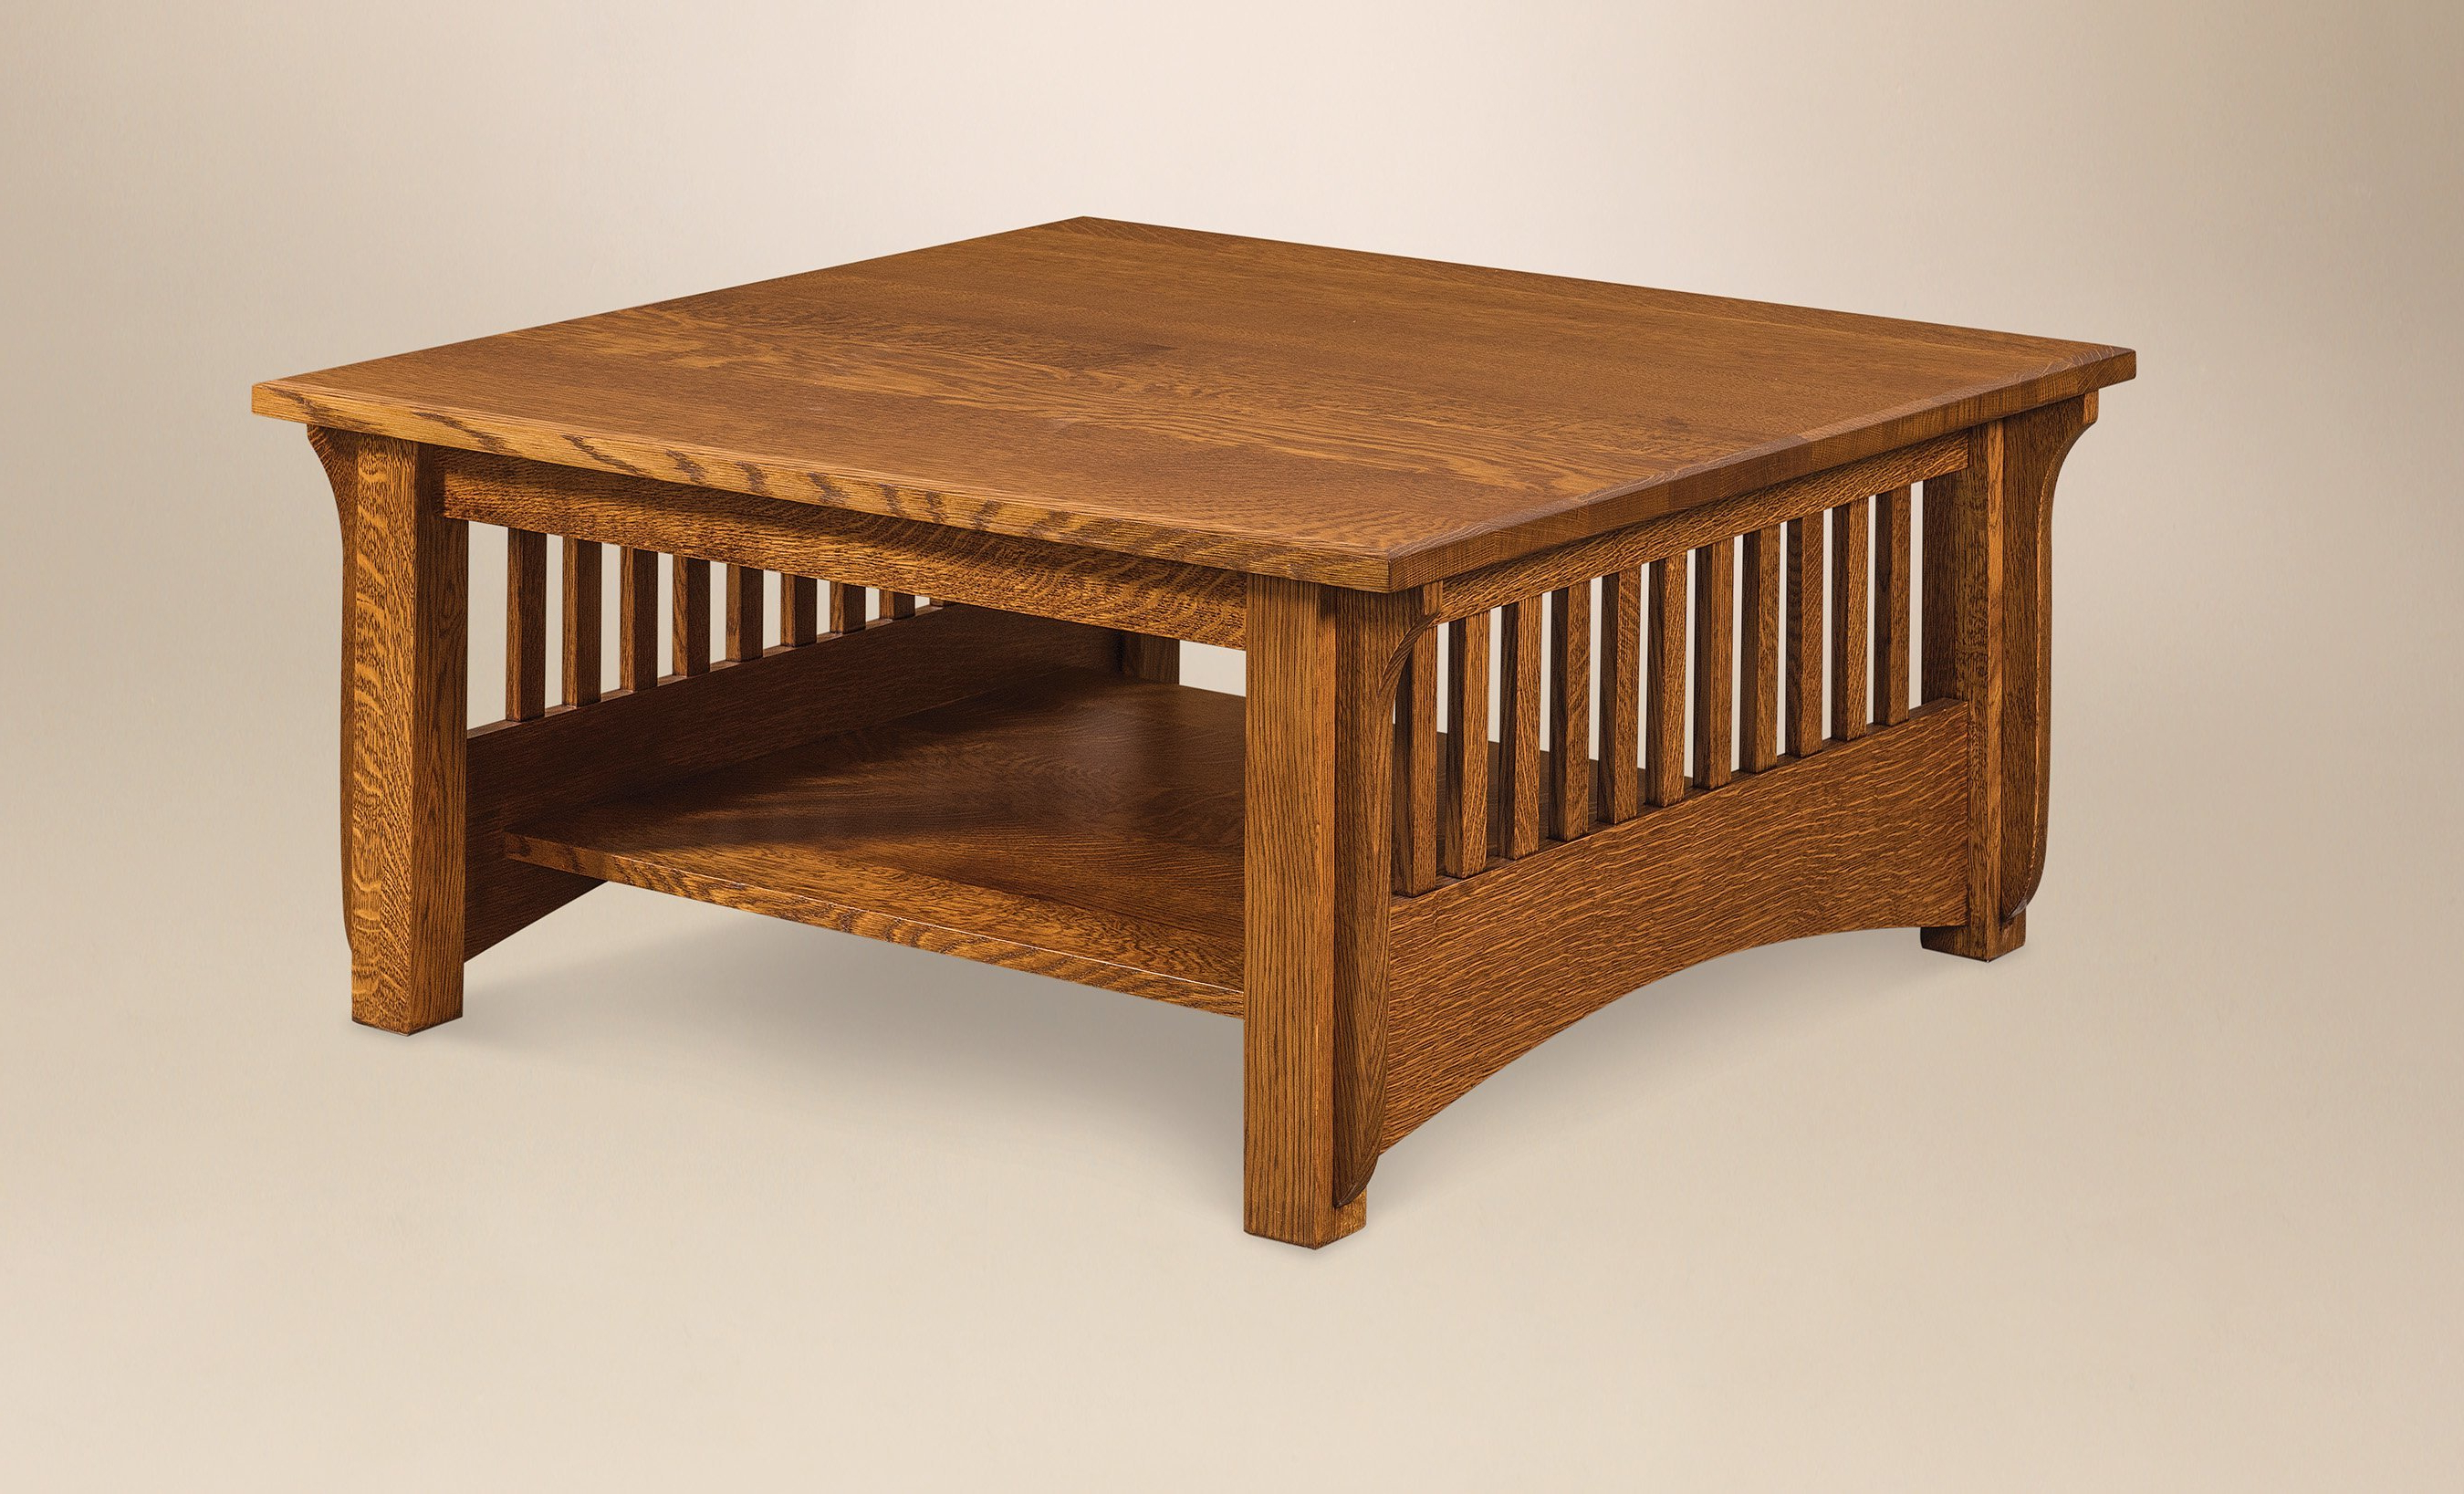 Amish Pioneer Mission Square Coffee Table Pertaining To Most Up To Date Lockwood Rectangle Coffee Tables (View 3 of 20)